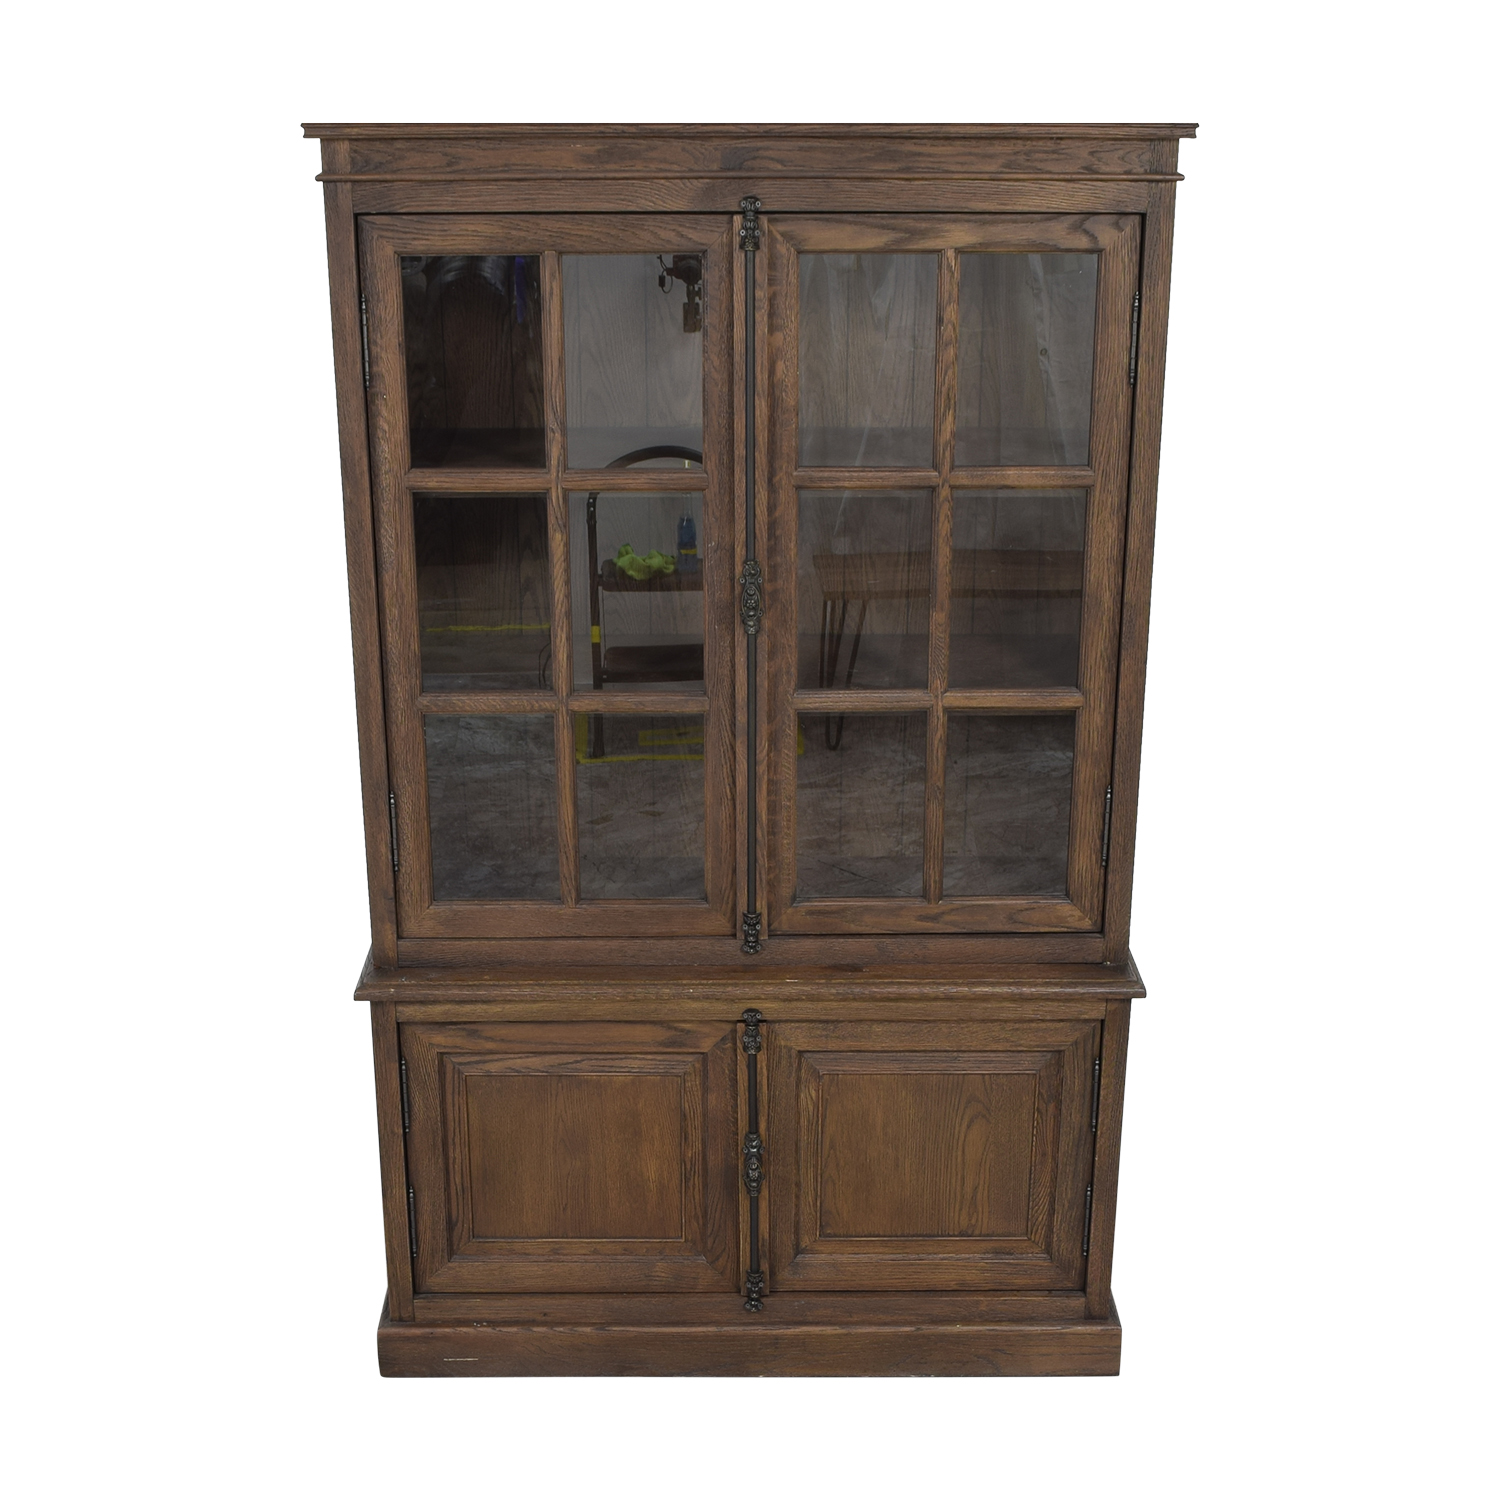 Restoration Hardware Restoration Hardware Display Cabinet price